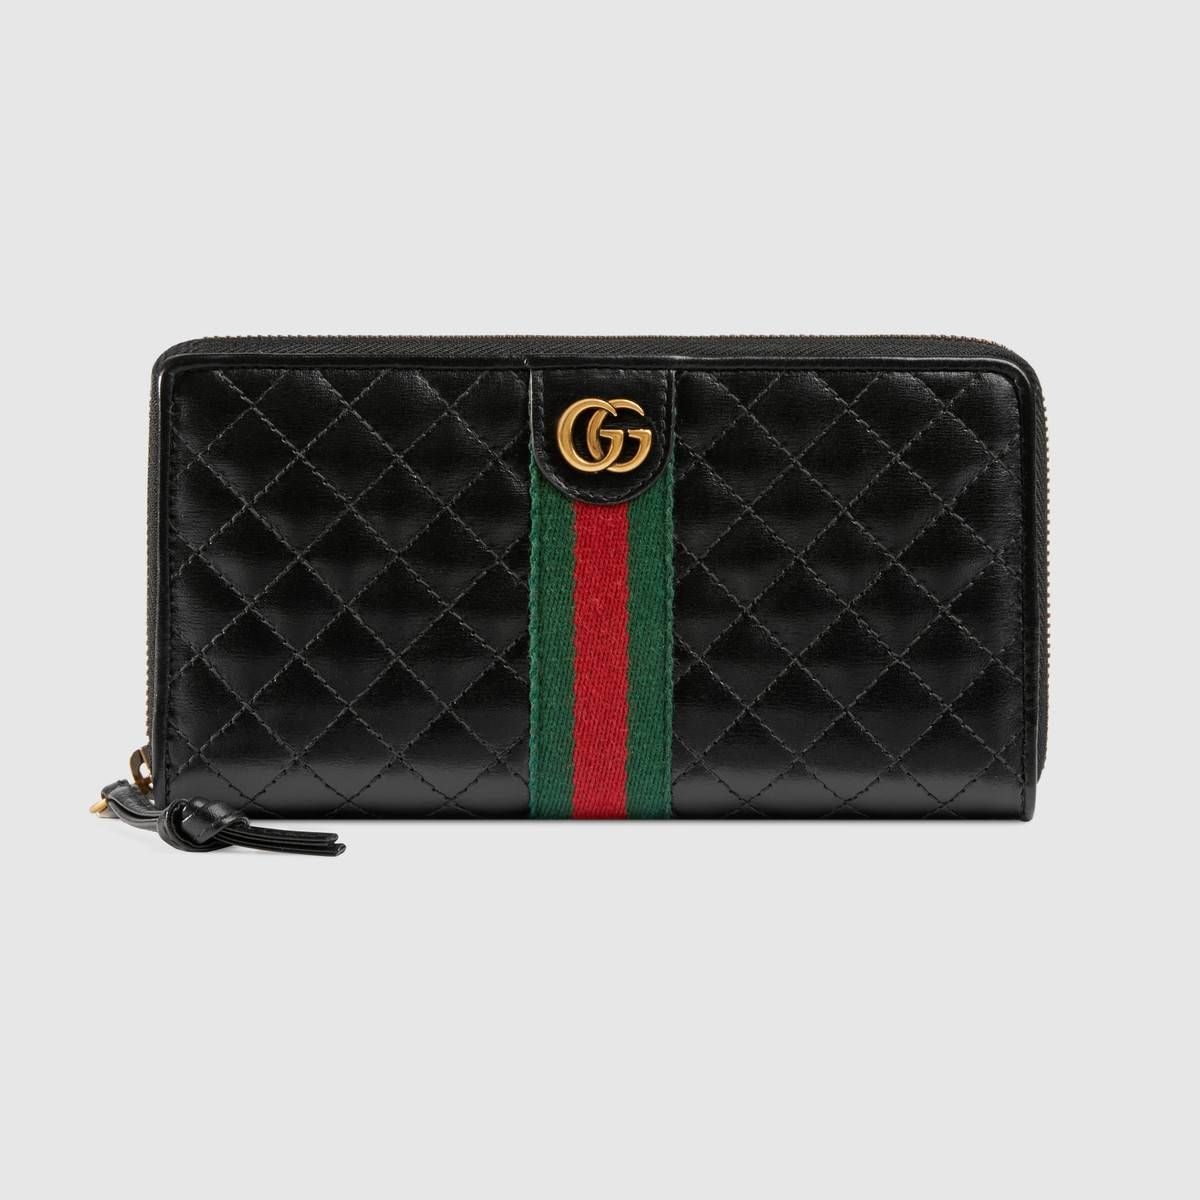 Leather Zip Around Wallet With Double G Gucci Women S Zip Around 5364500ykbt1060 Zip Around Wallet Gucci Leather Wallets For Women